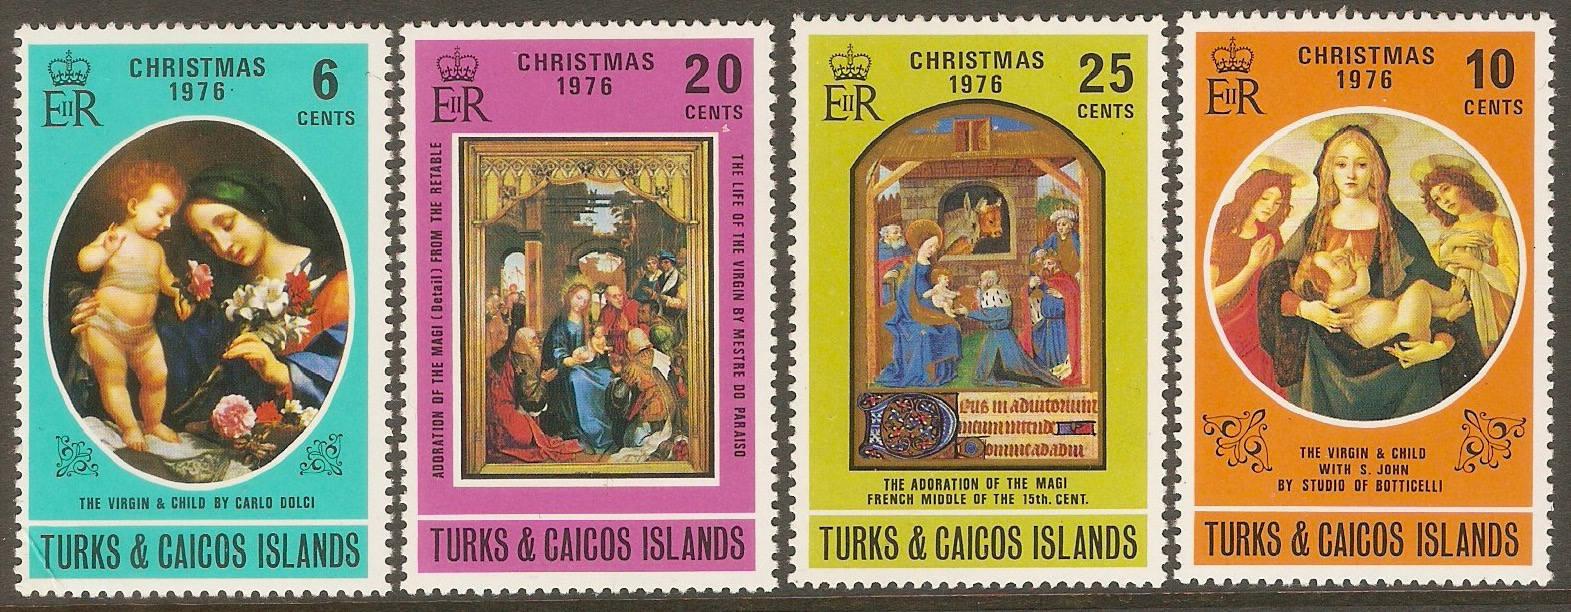 Turks and Caicos 1976 Christmas set. SG468-SG471.